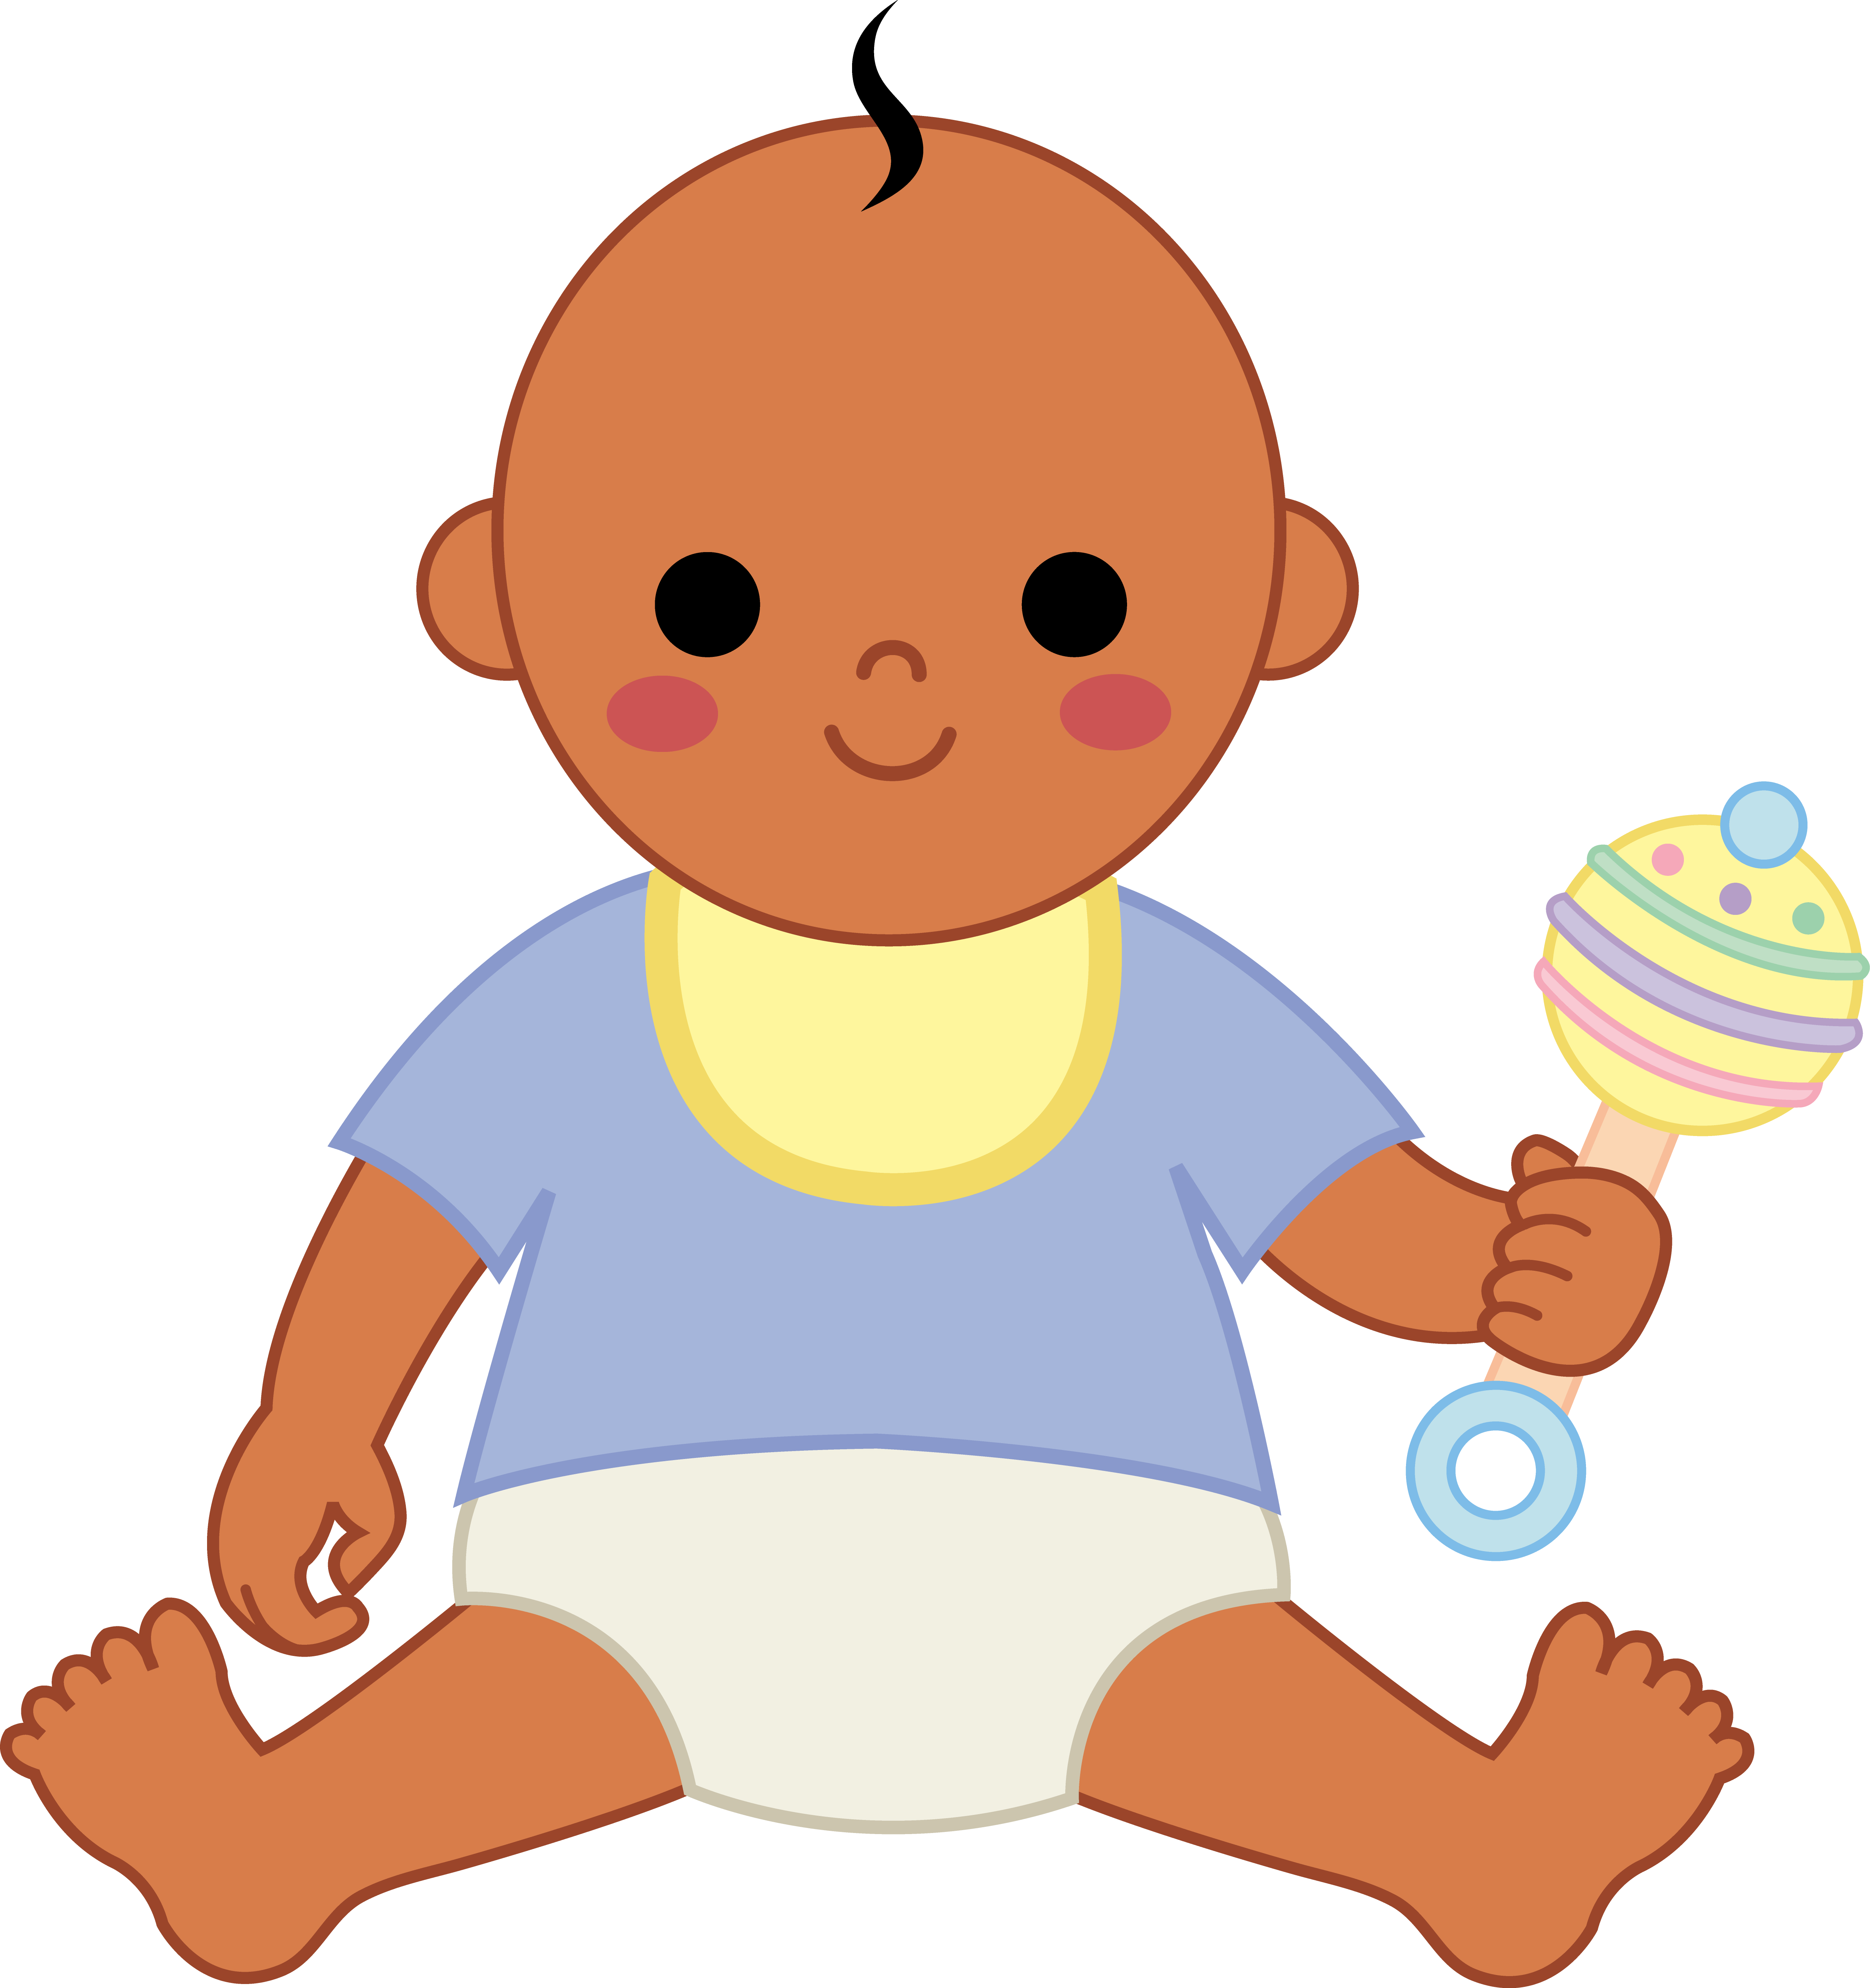 Baby clipart #6, Download drawings